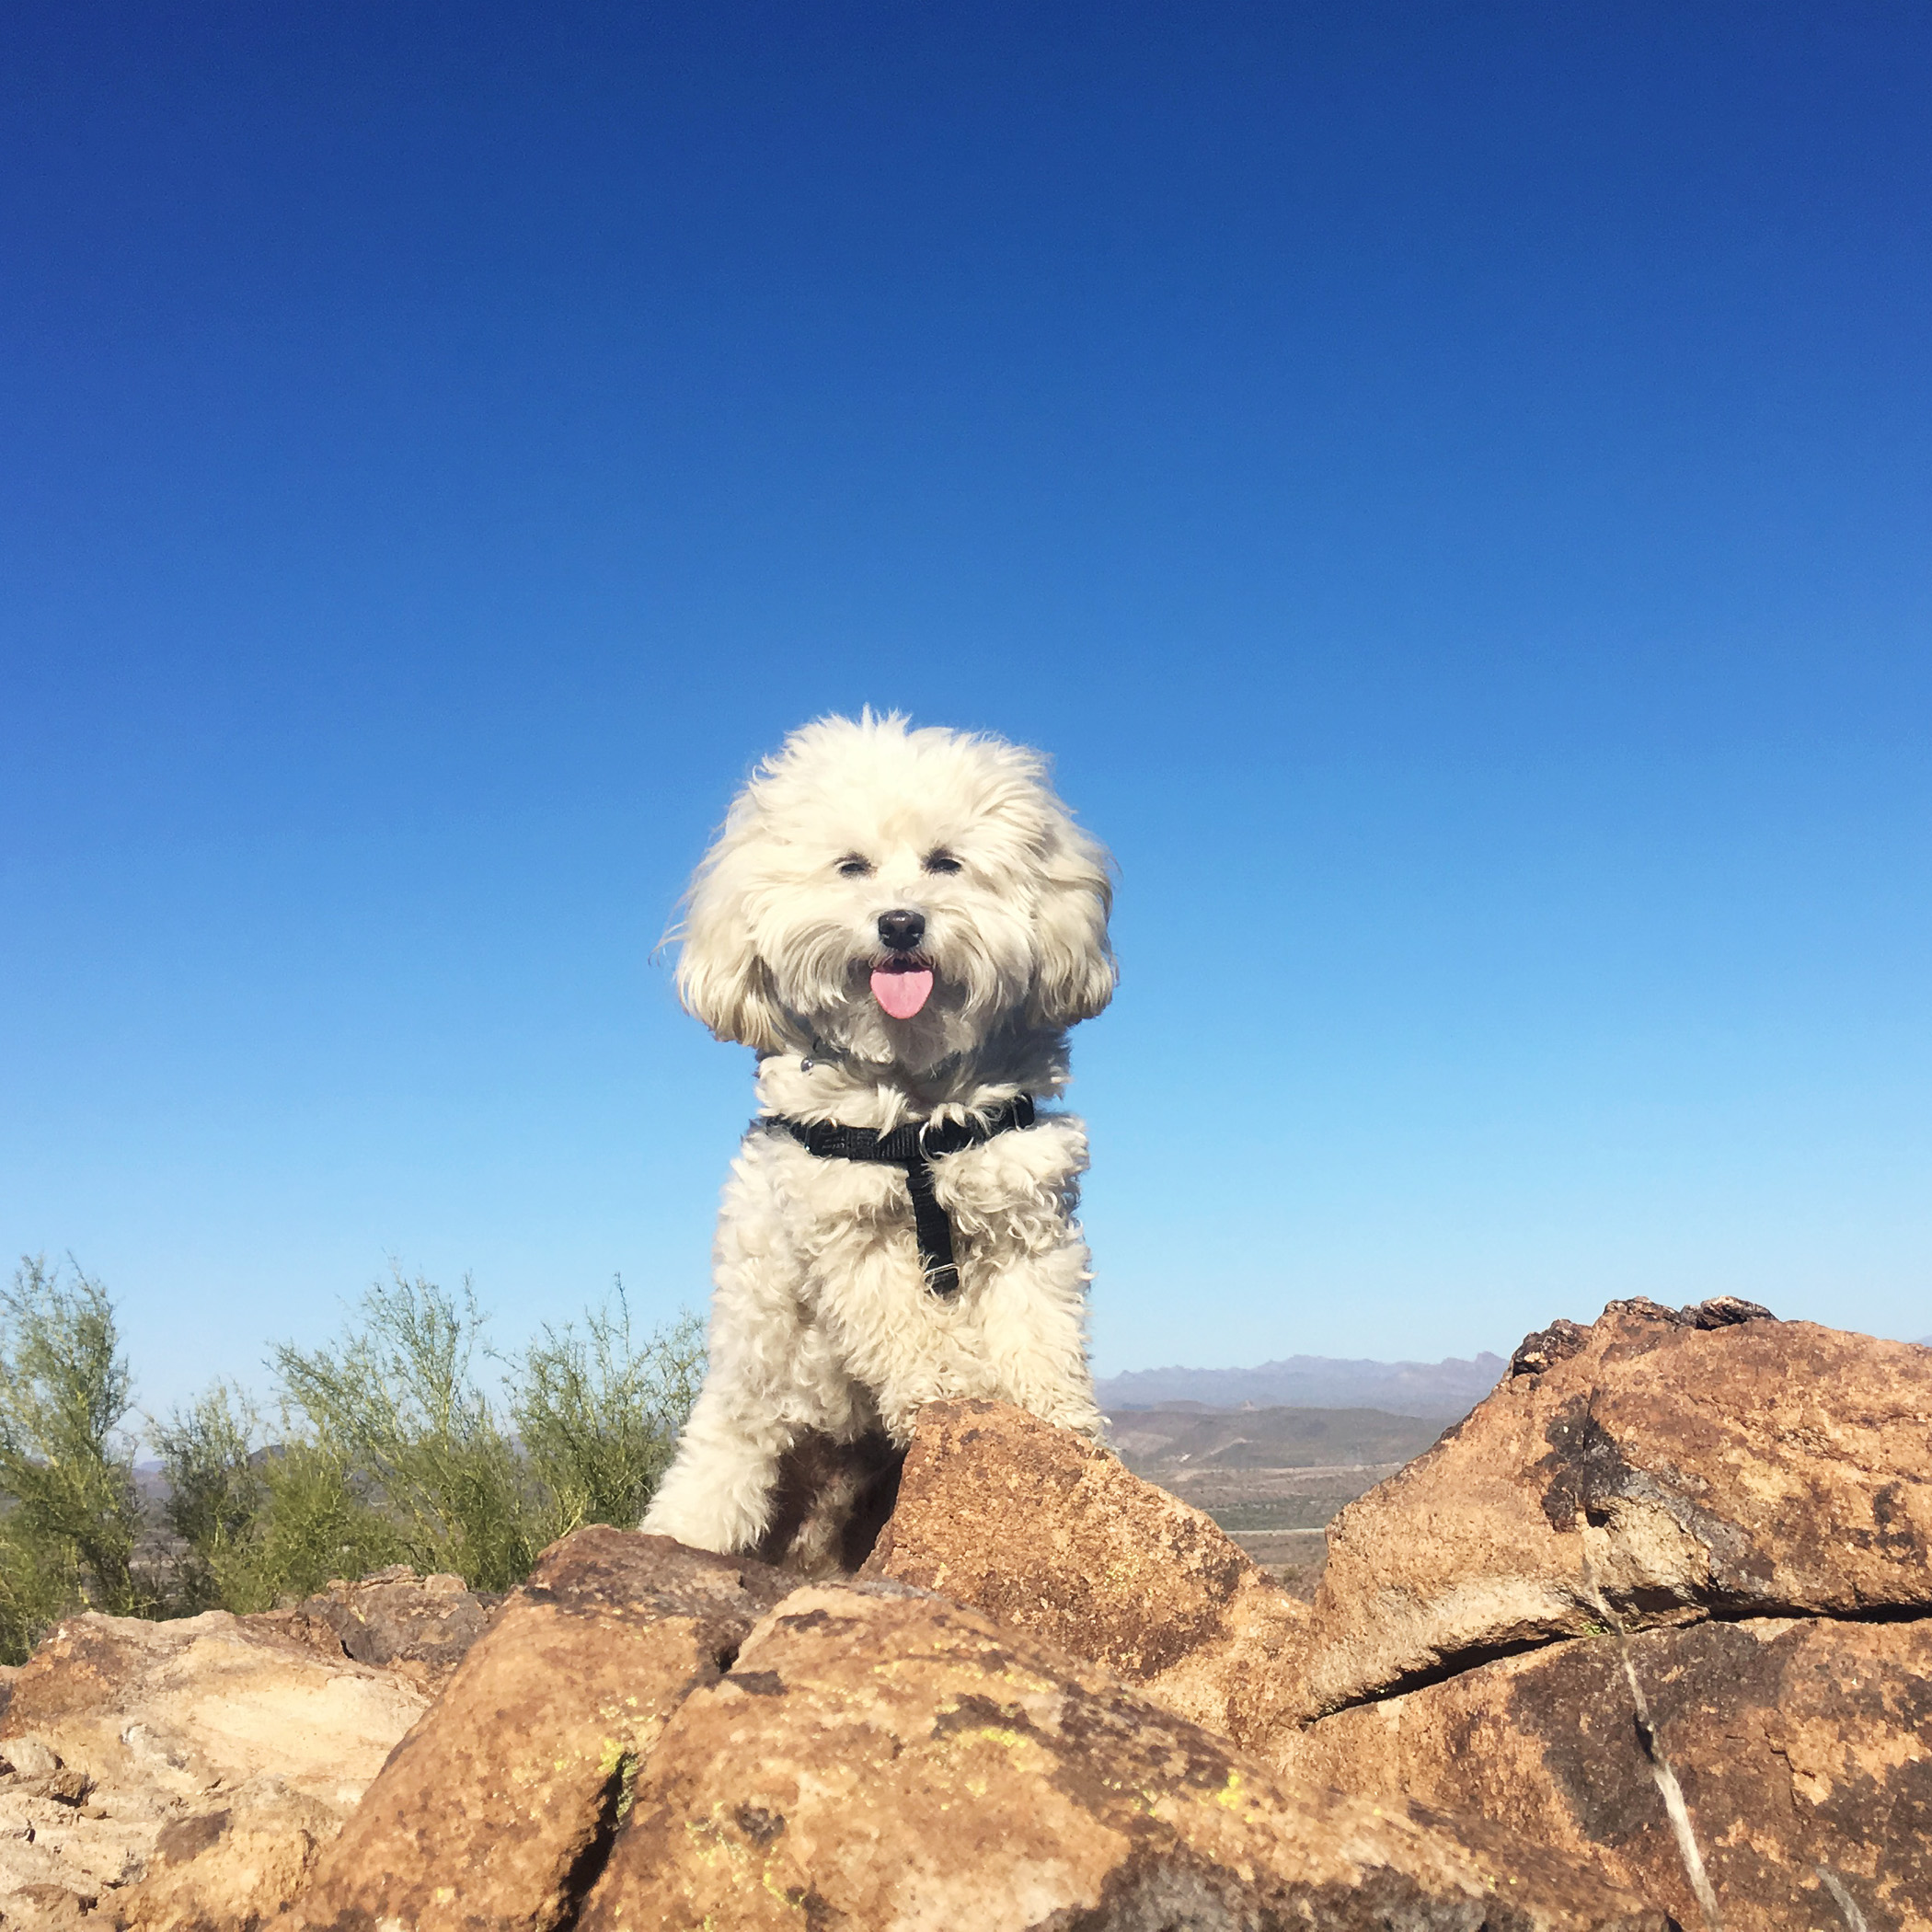 King of the Mountain!! Come on tell me you've never wanted to do that?!?